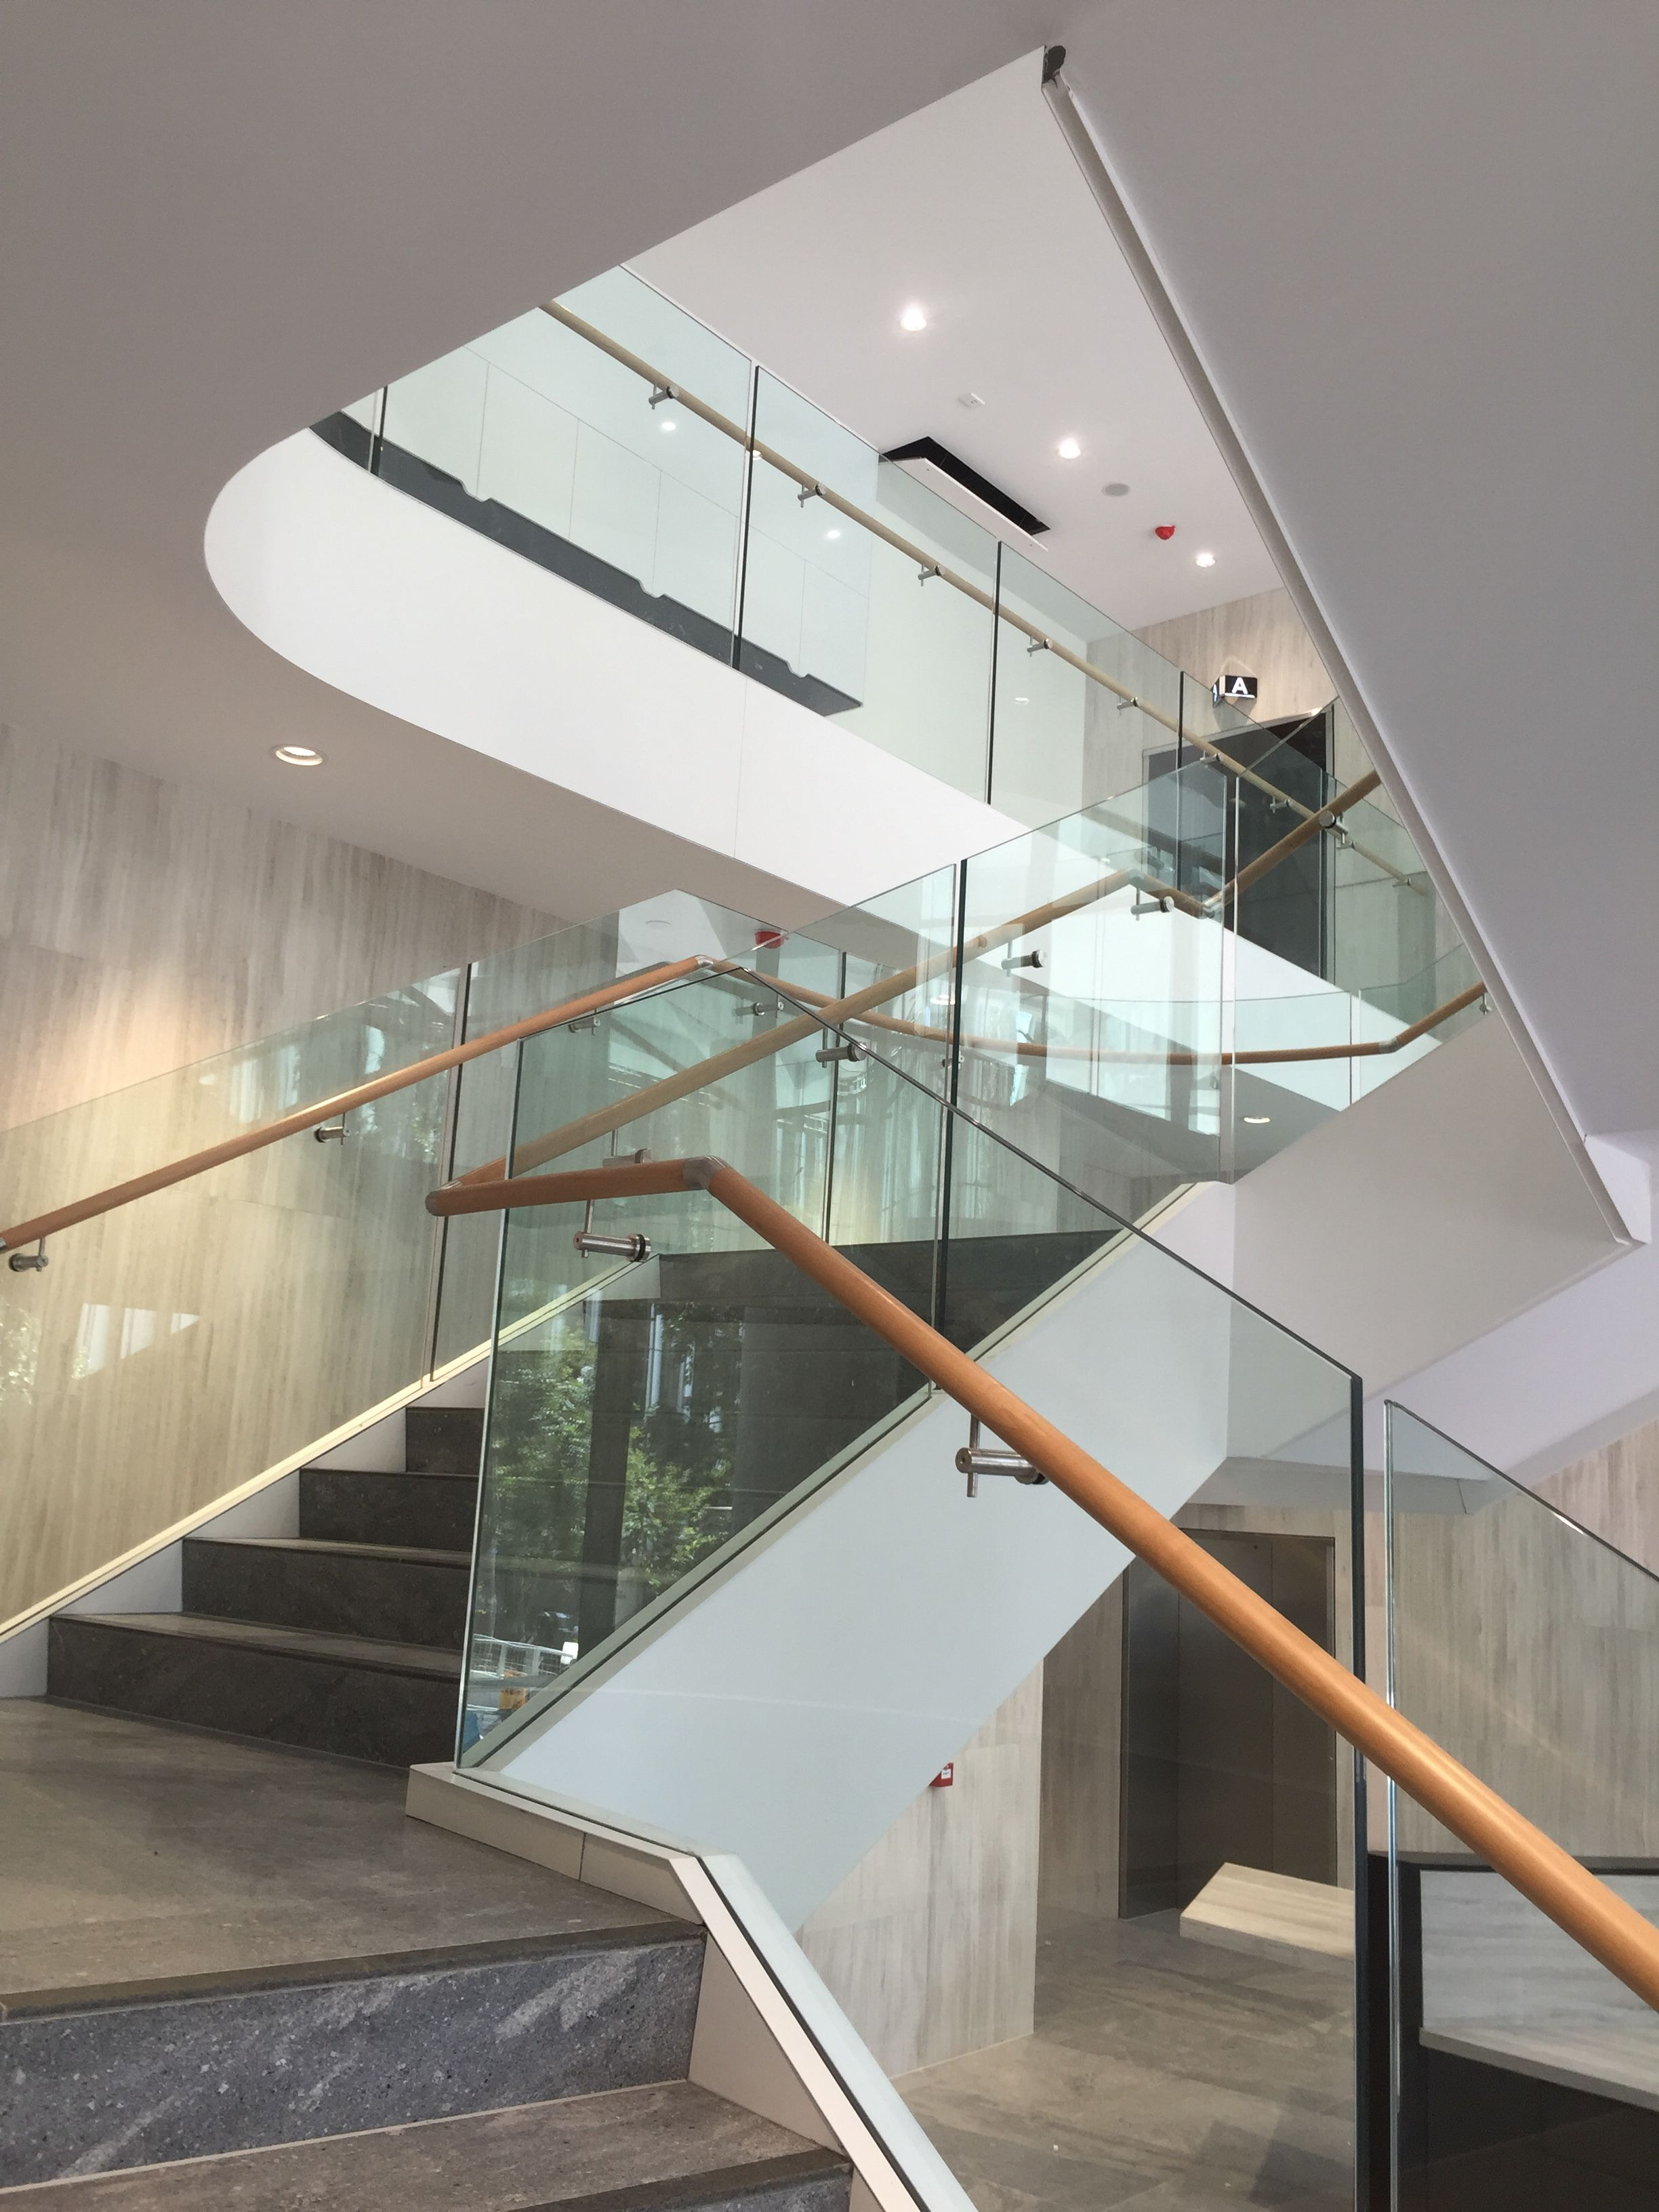 Thump X1 Series Frameless Glass Balustrade on Southpoint Building Flight Centre AU HQ for Watpac